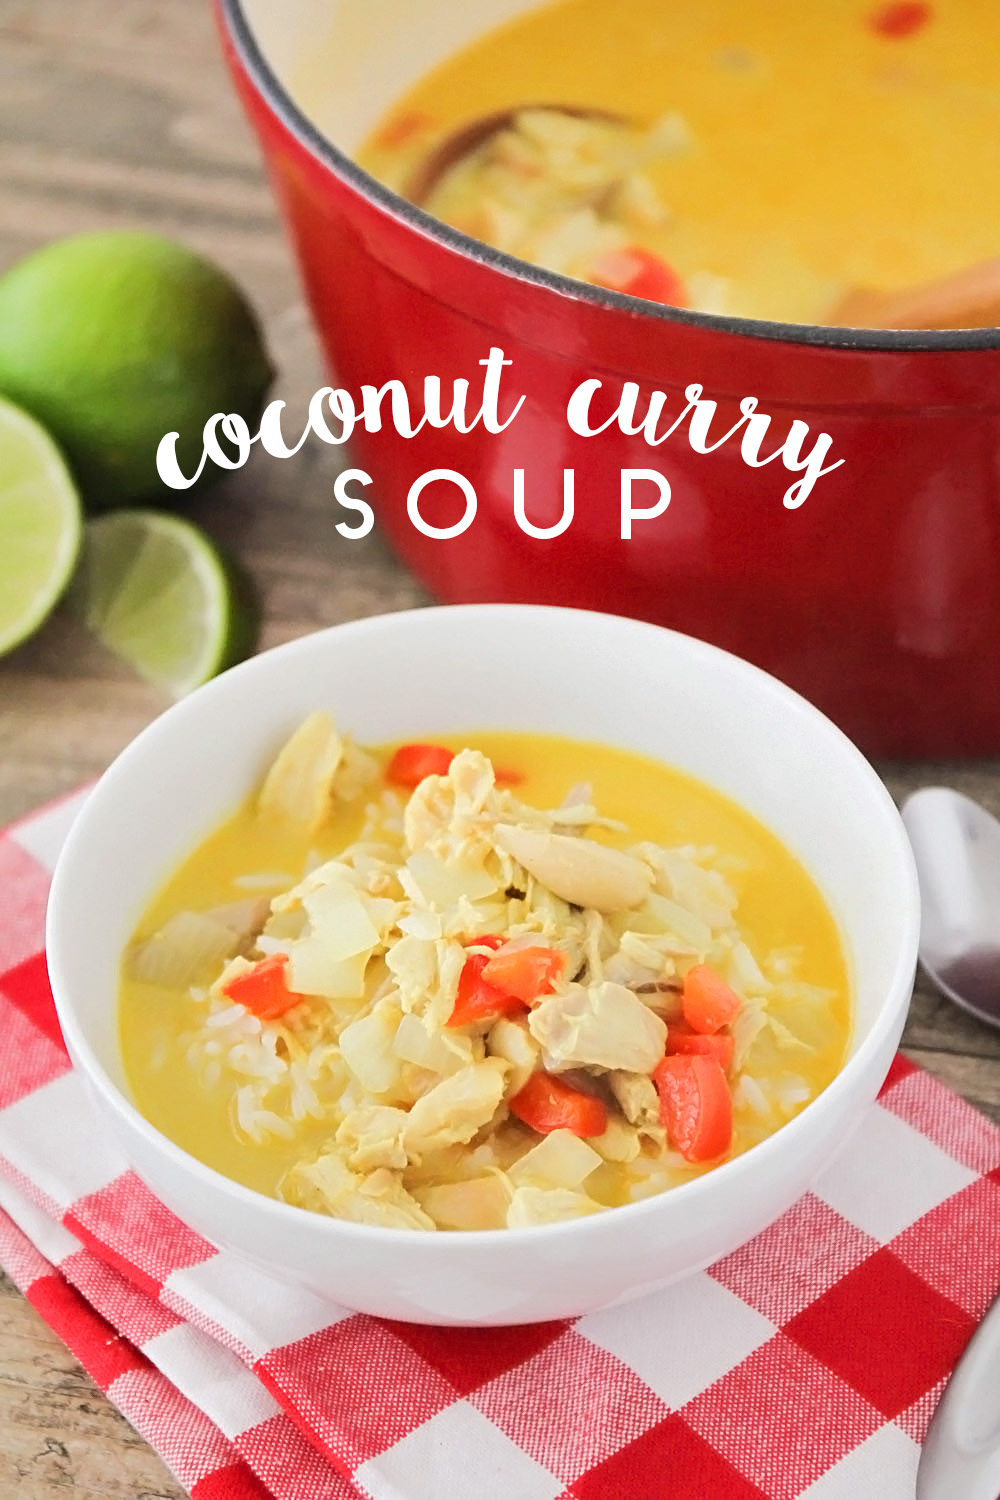 This savory and flavorful coconut curry soup is ready in less than 30 minutes and so easy to make!